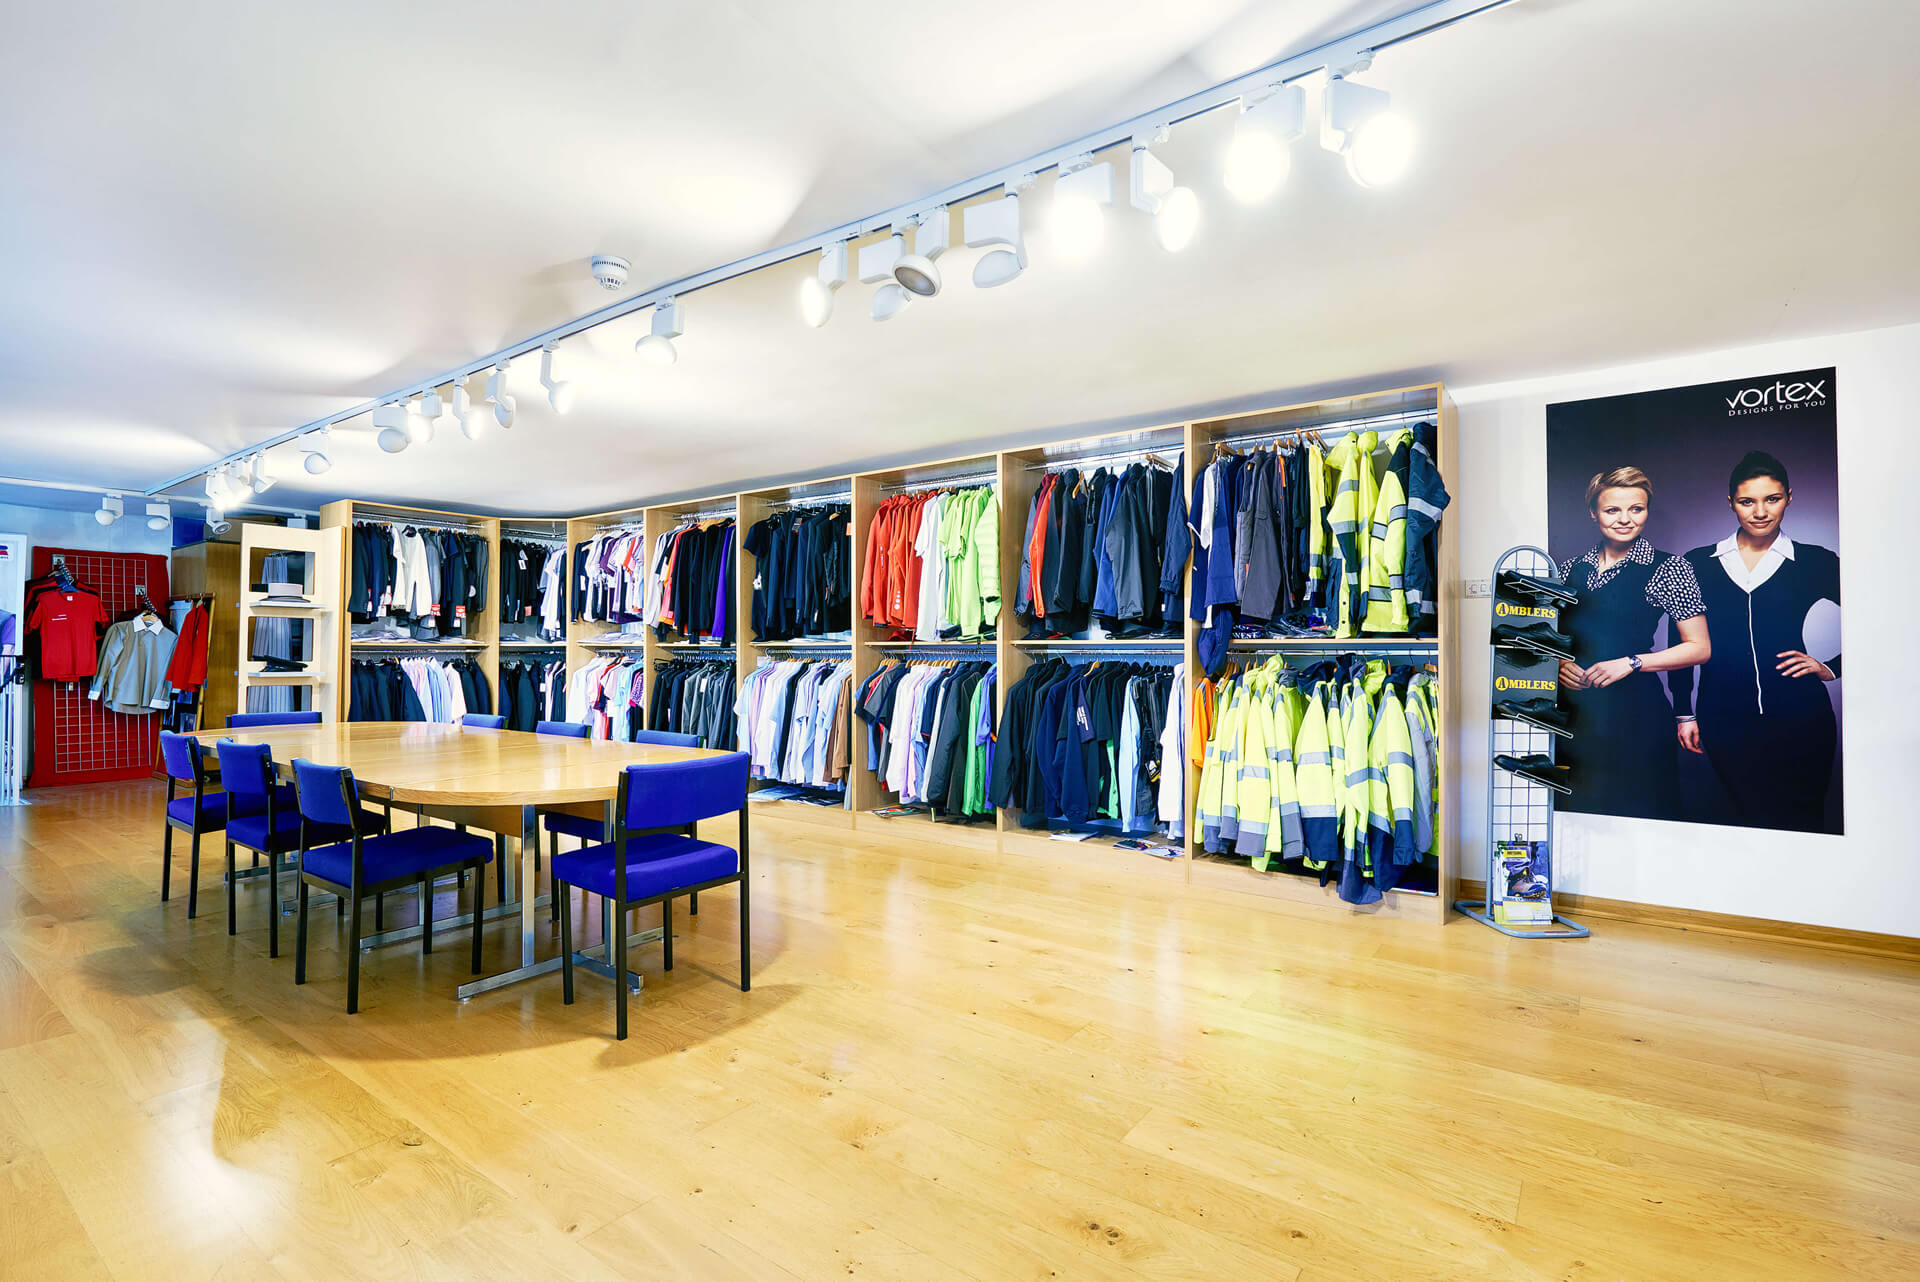 corprotex manchester showroom, displaying corporate clothing and workwear